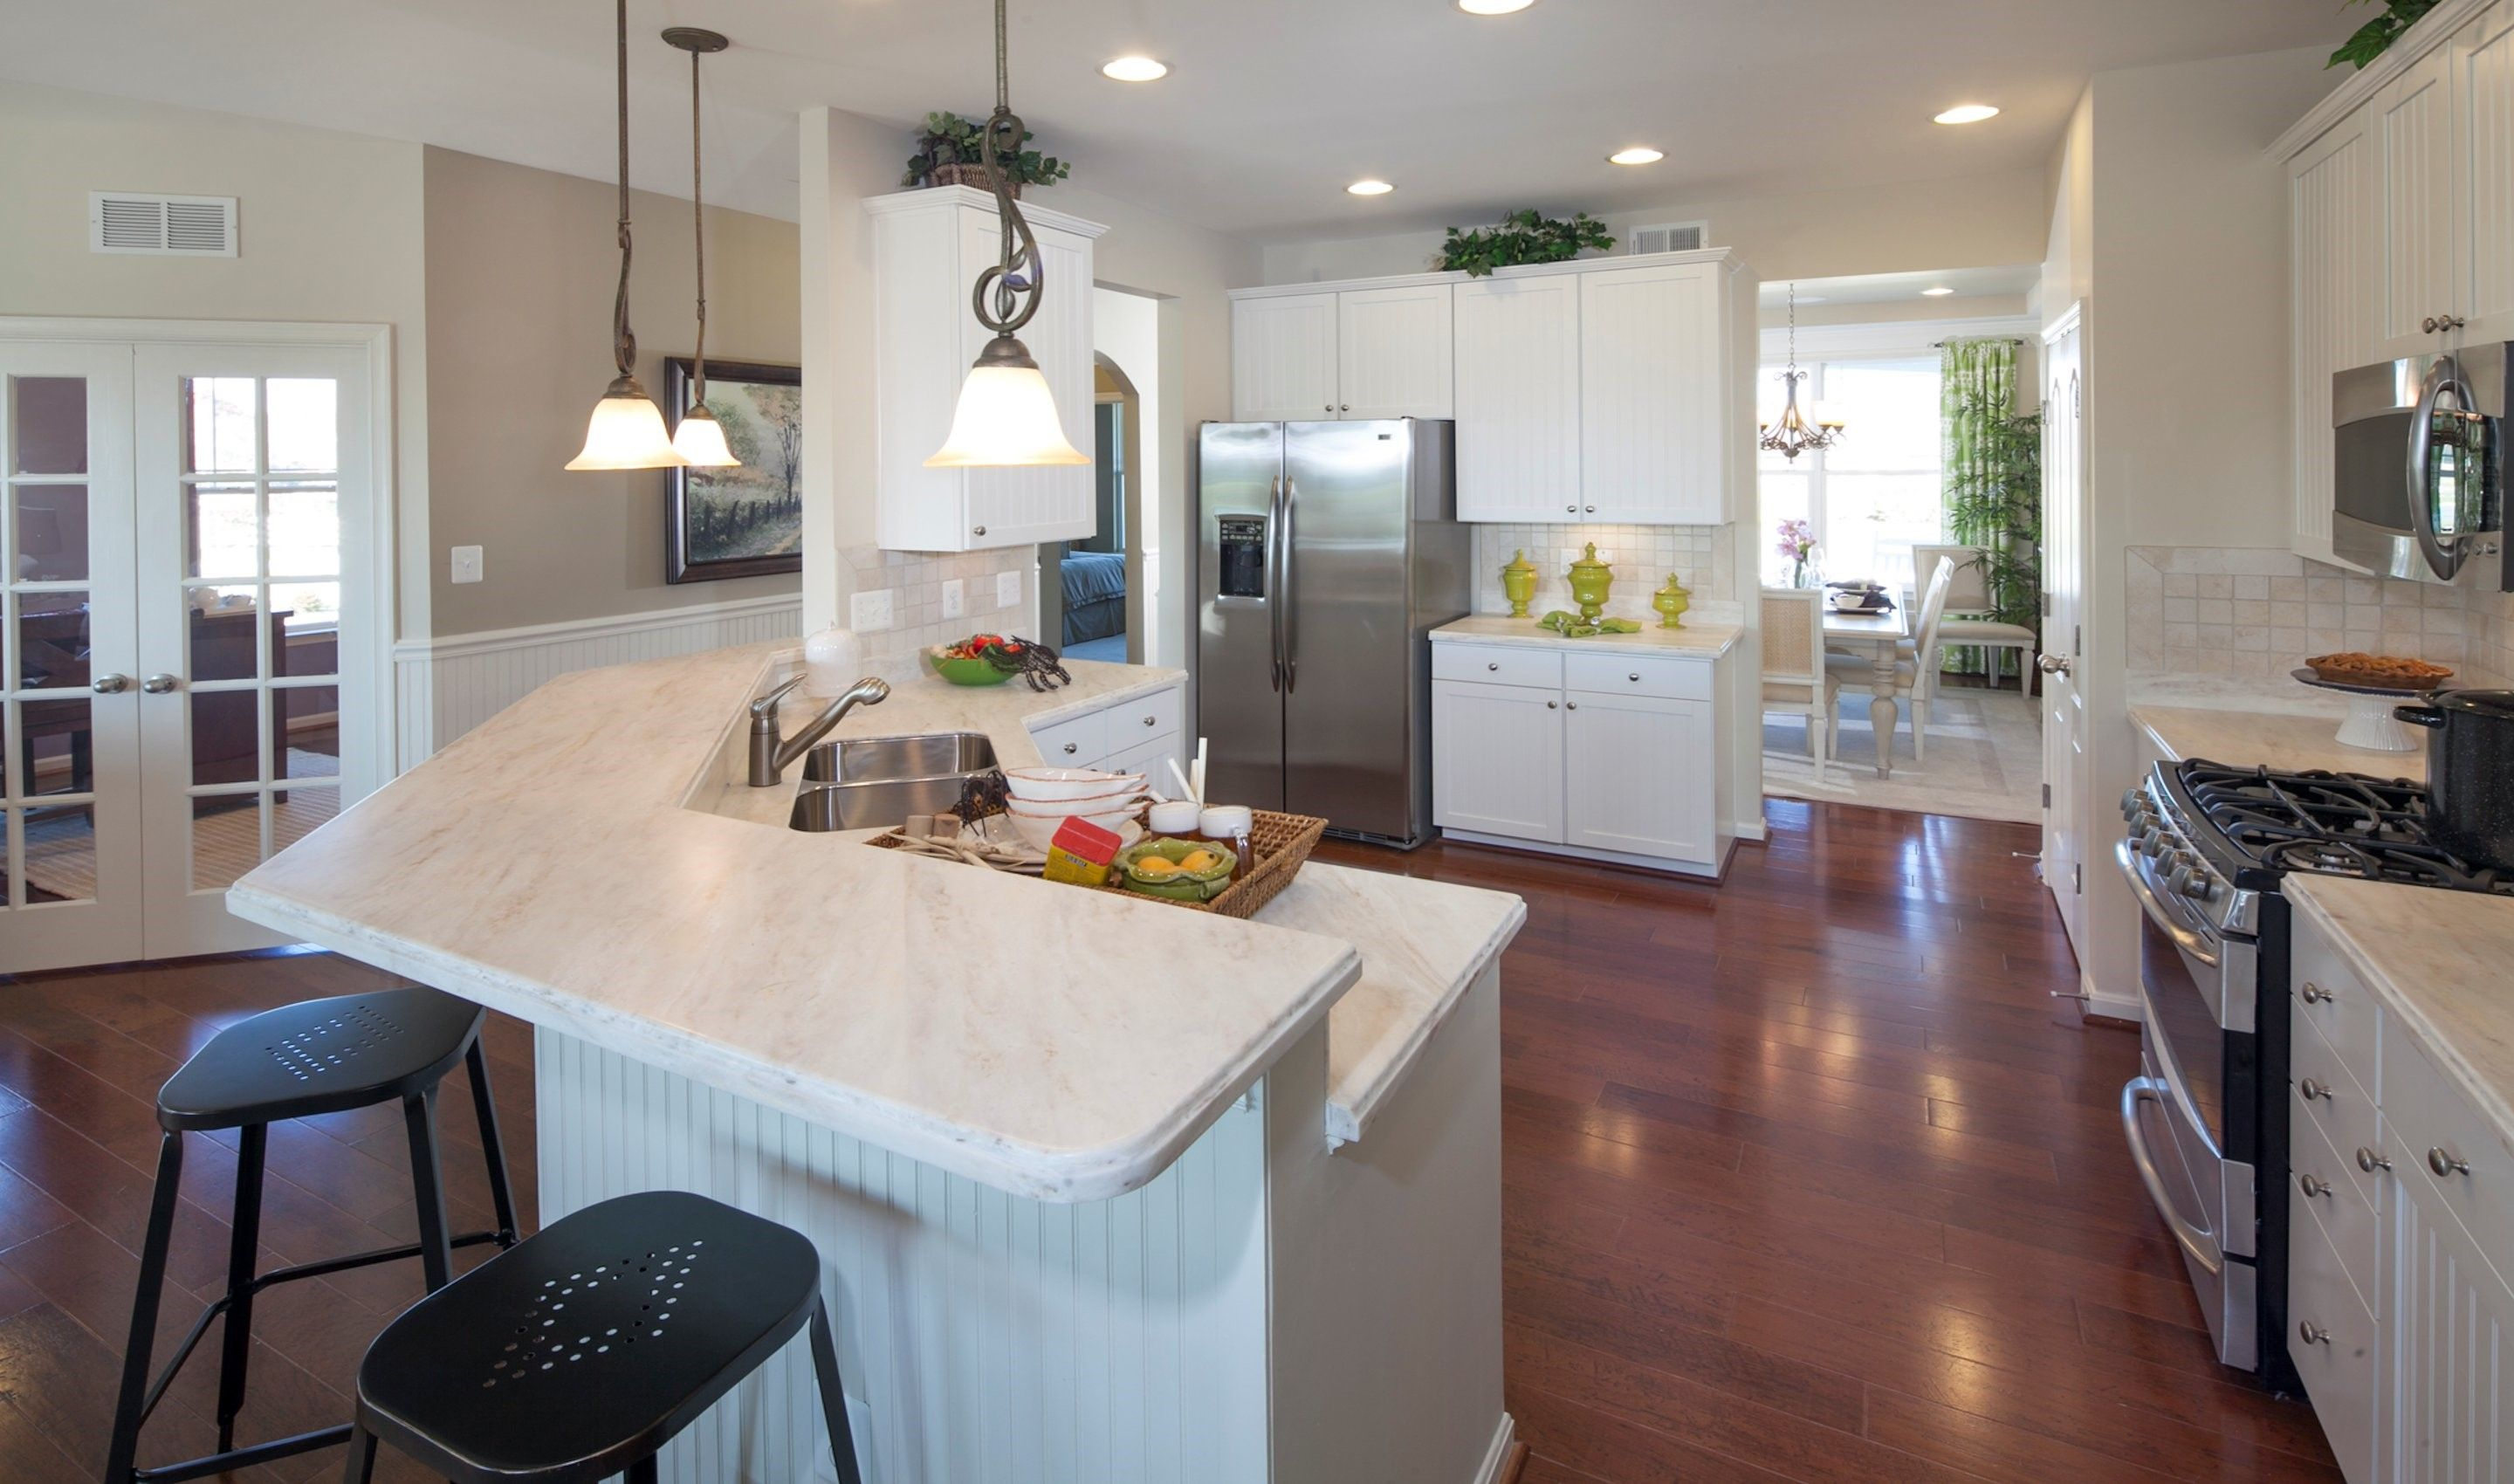 Kitchen featured in the Jasmine By K. Hovnanian® Homes in Sussex, DE